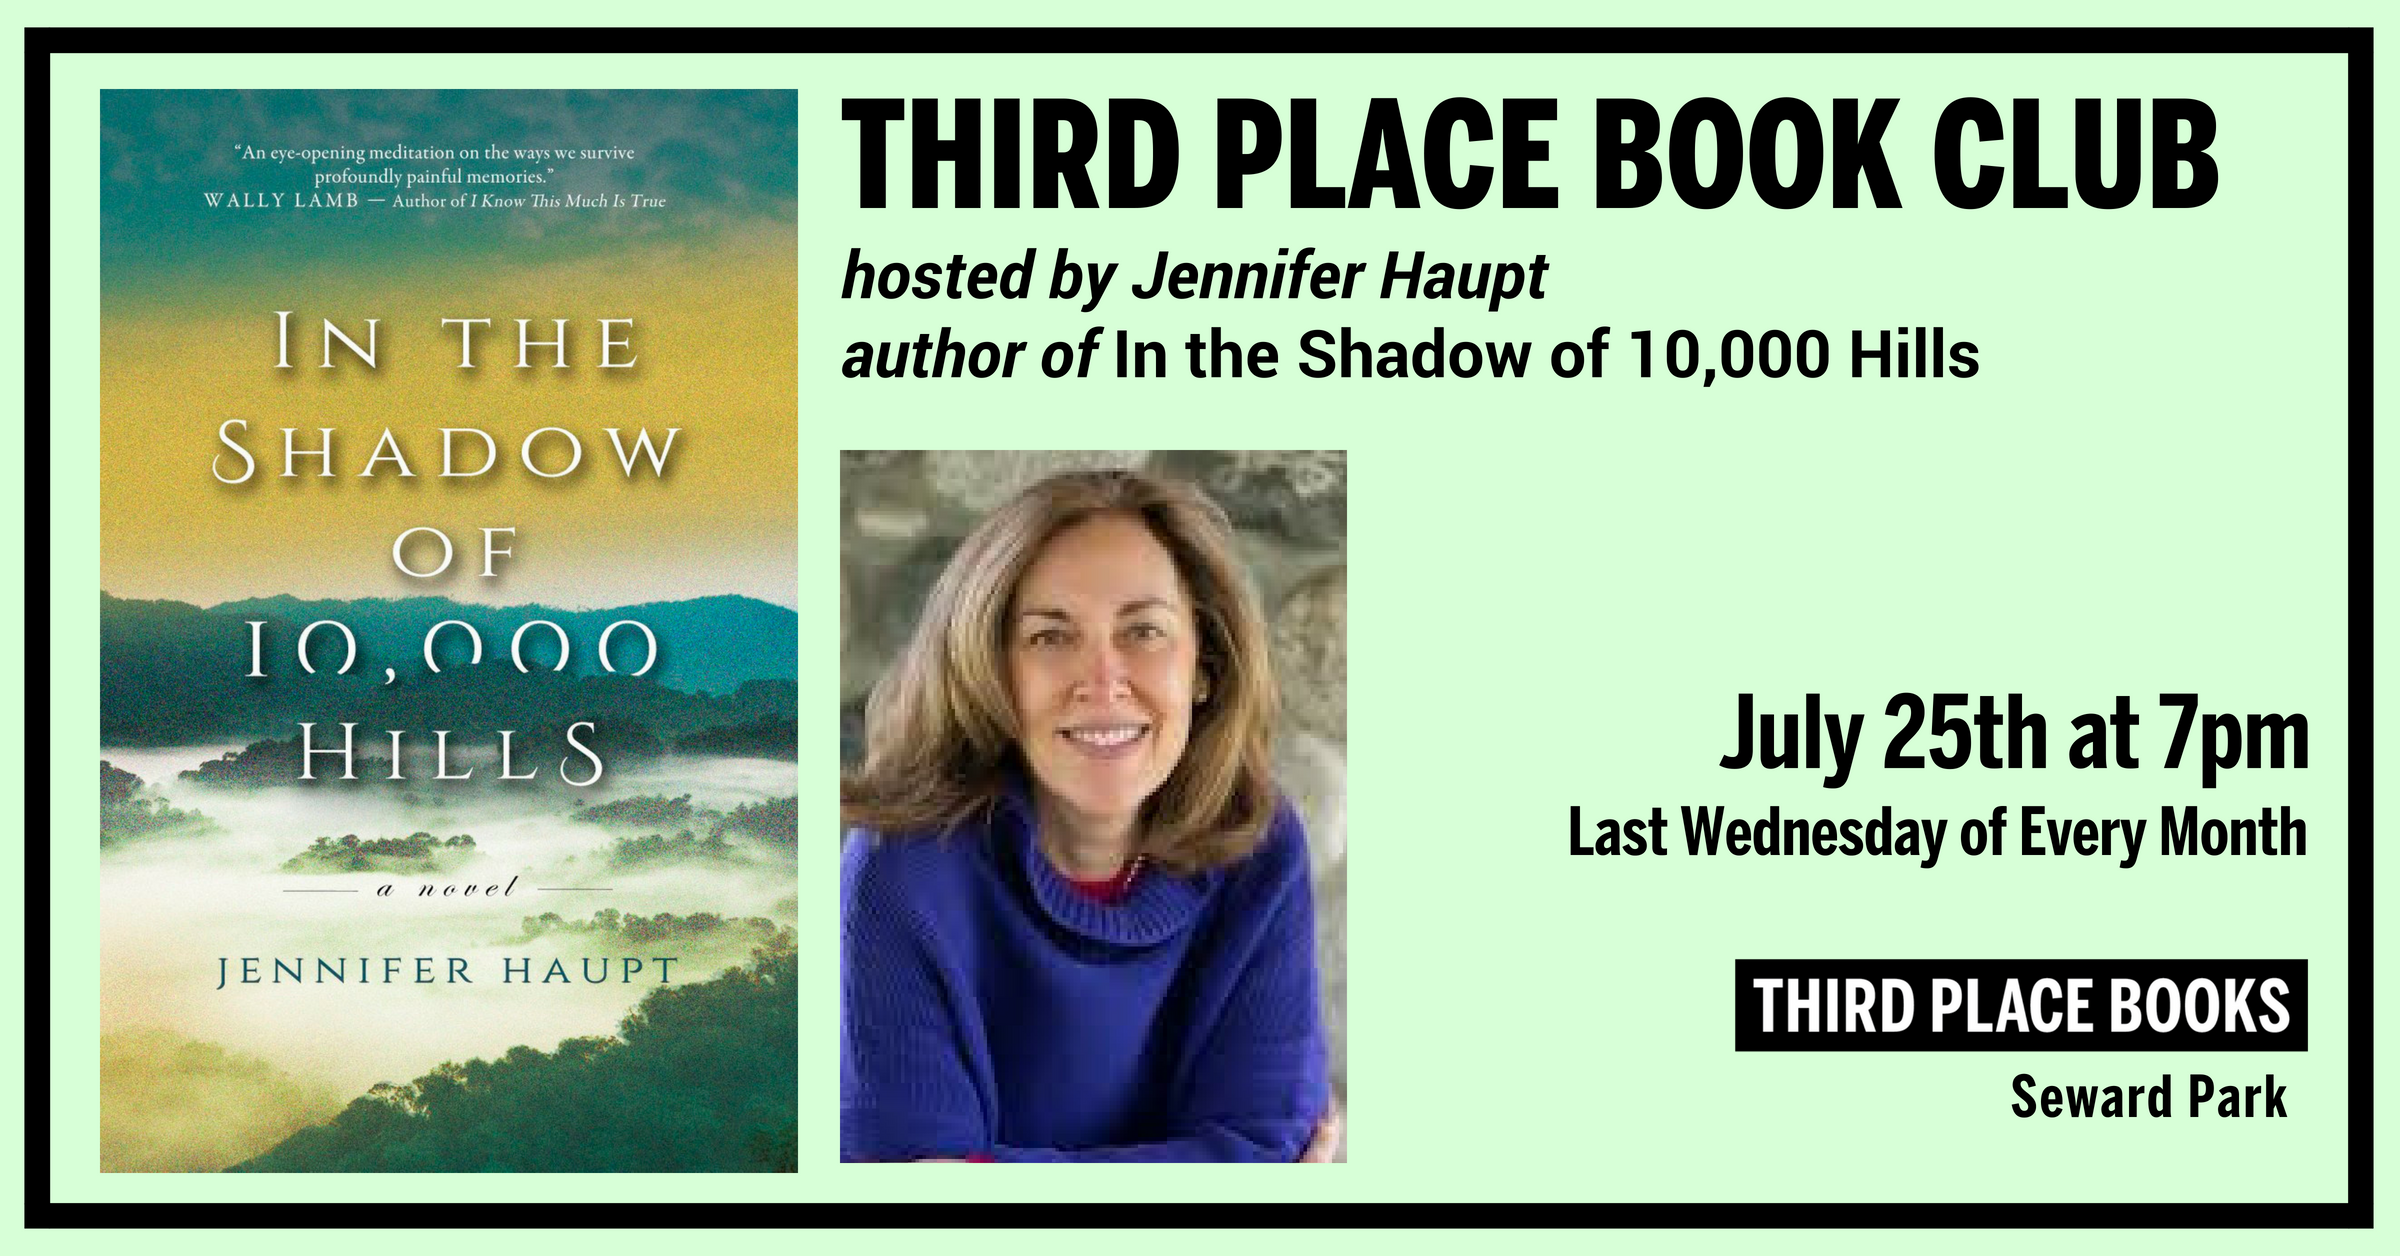 Third Place Book Club with Jennifer Haupt reading In the Shadow of 10,000 Hills on Wednesday, July 25th at 7pm